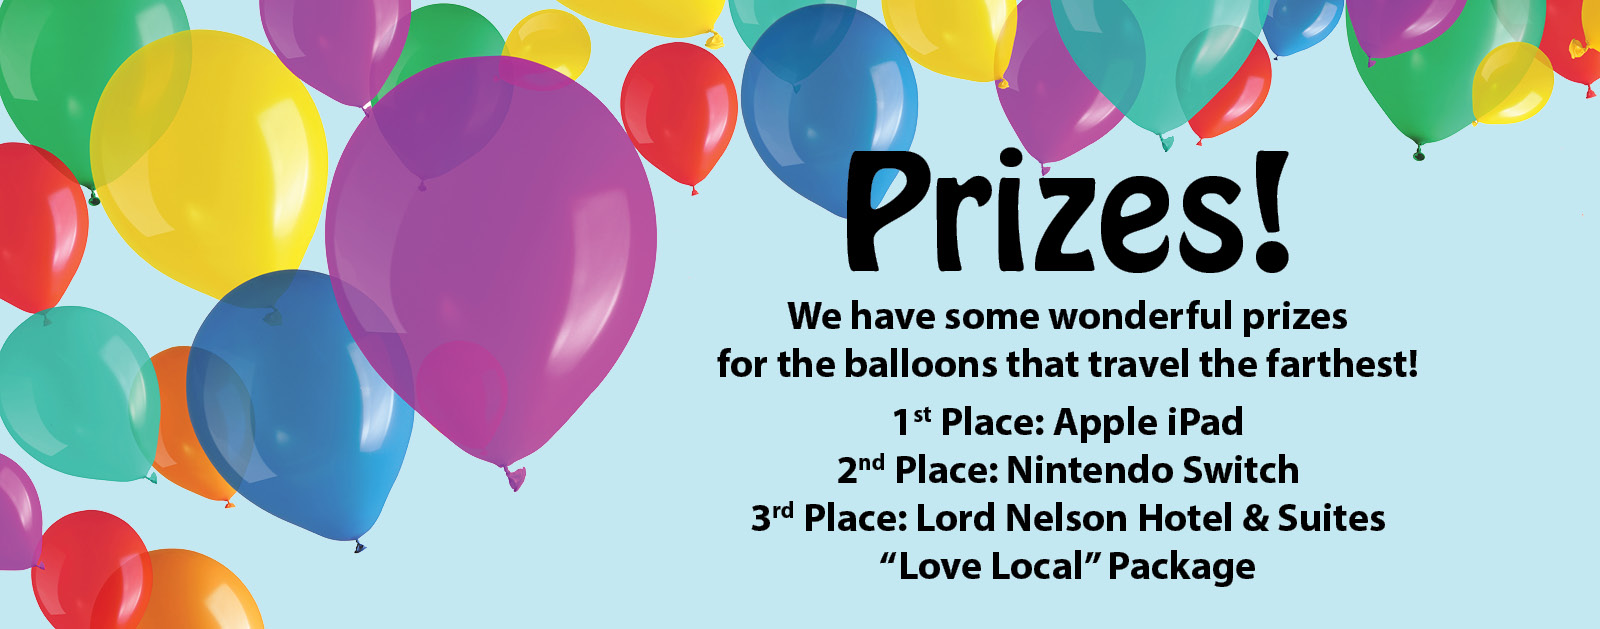 We have some wonderful prizes for the balloons that travel the farthest